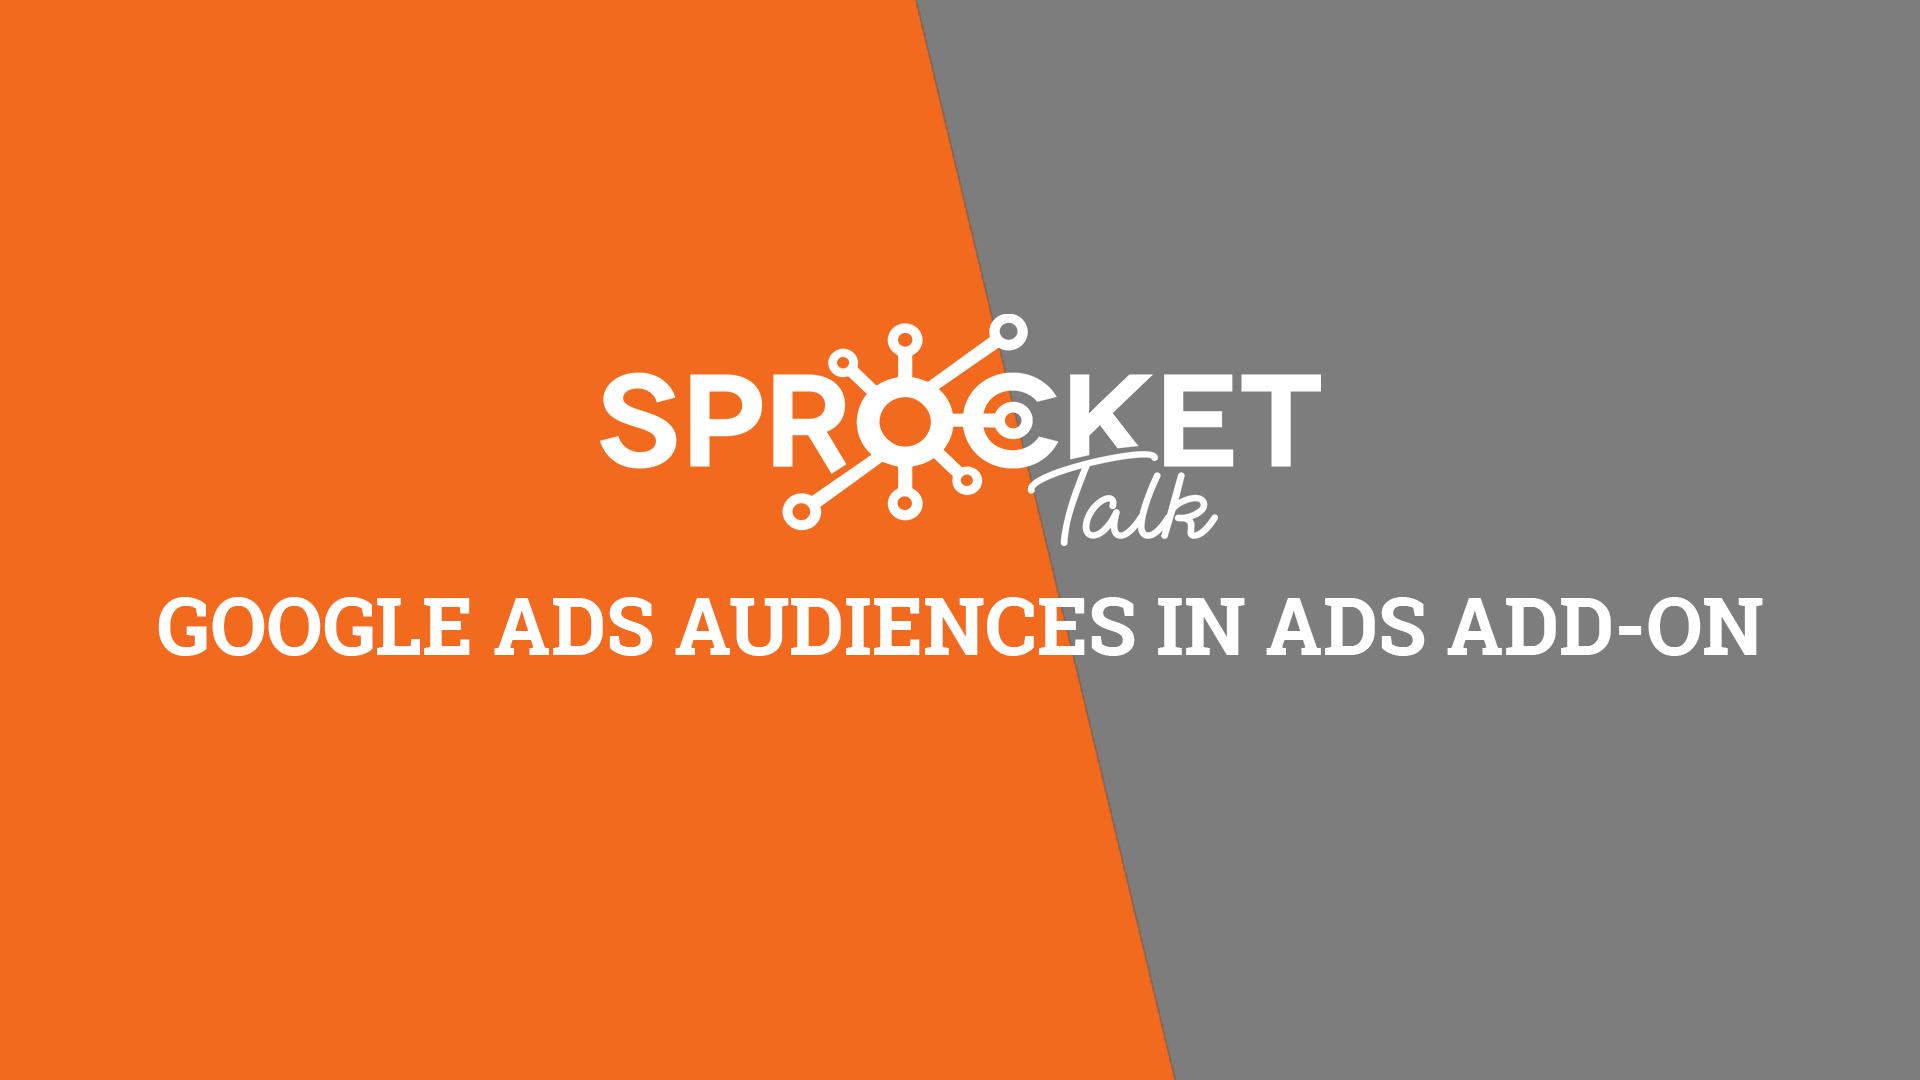 Google Ads Audiences in Ads Add-on